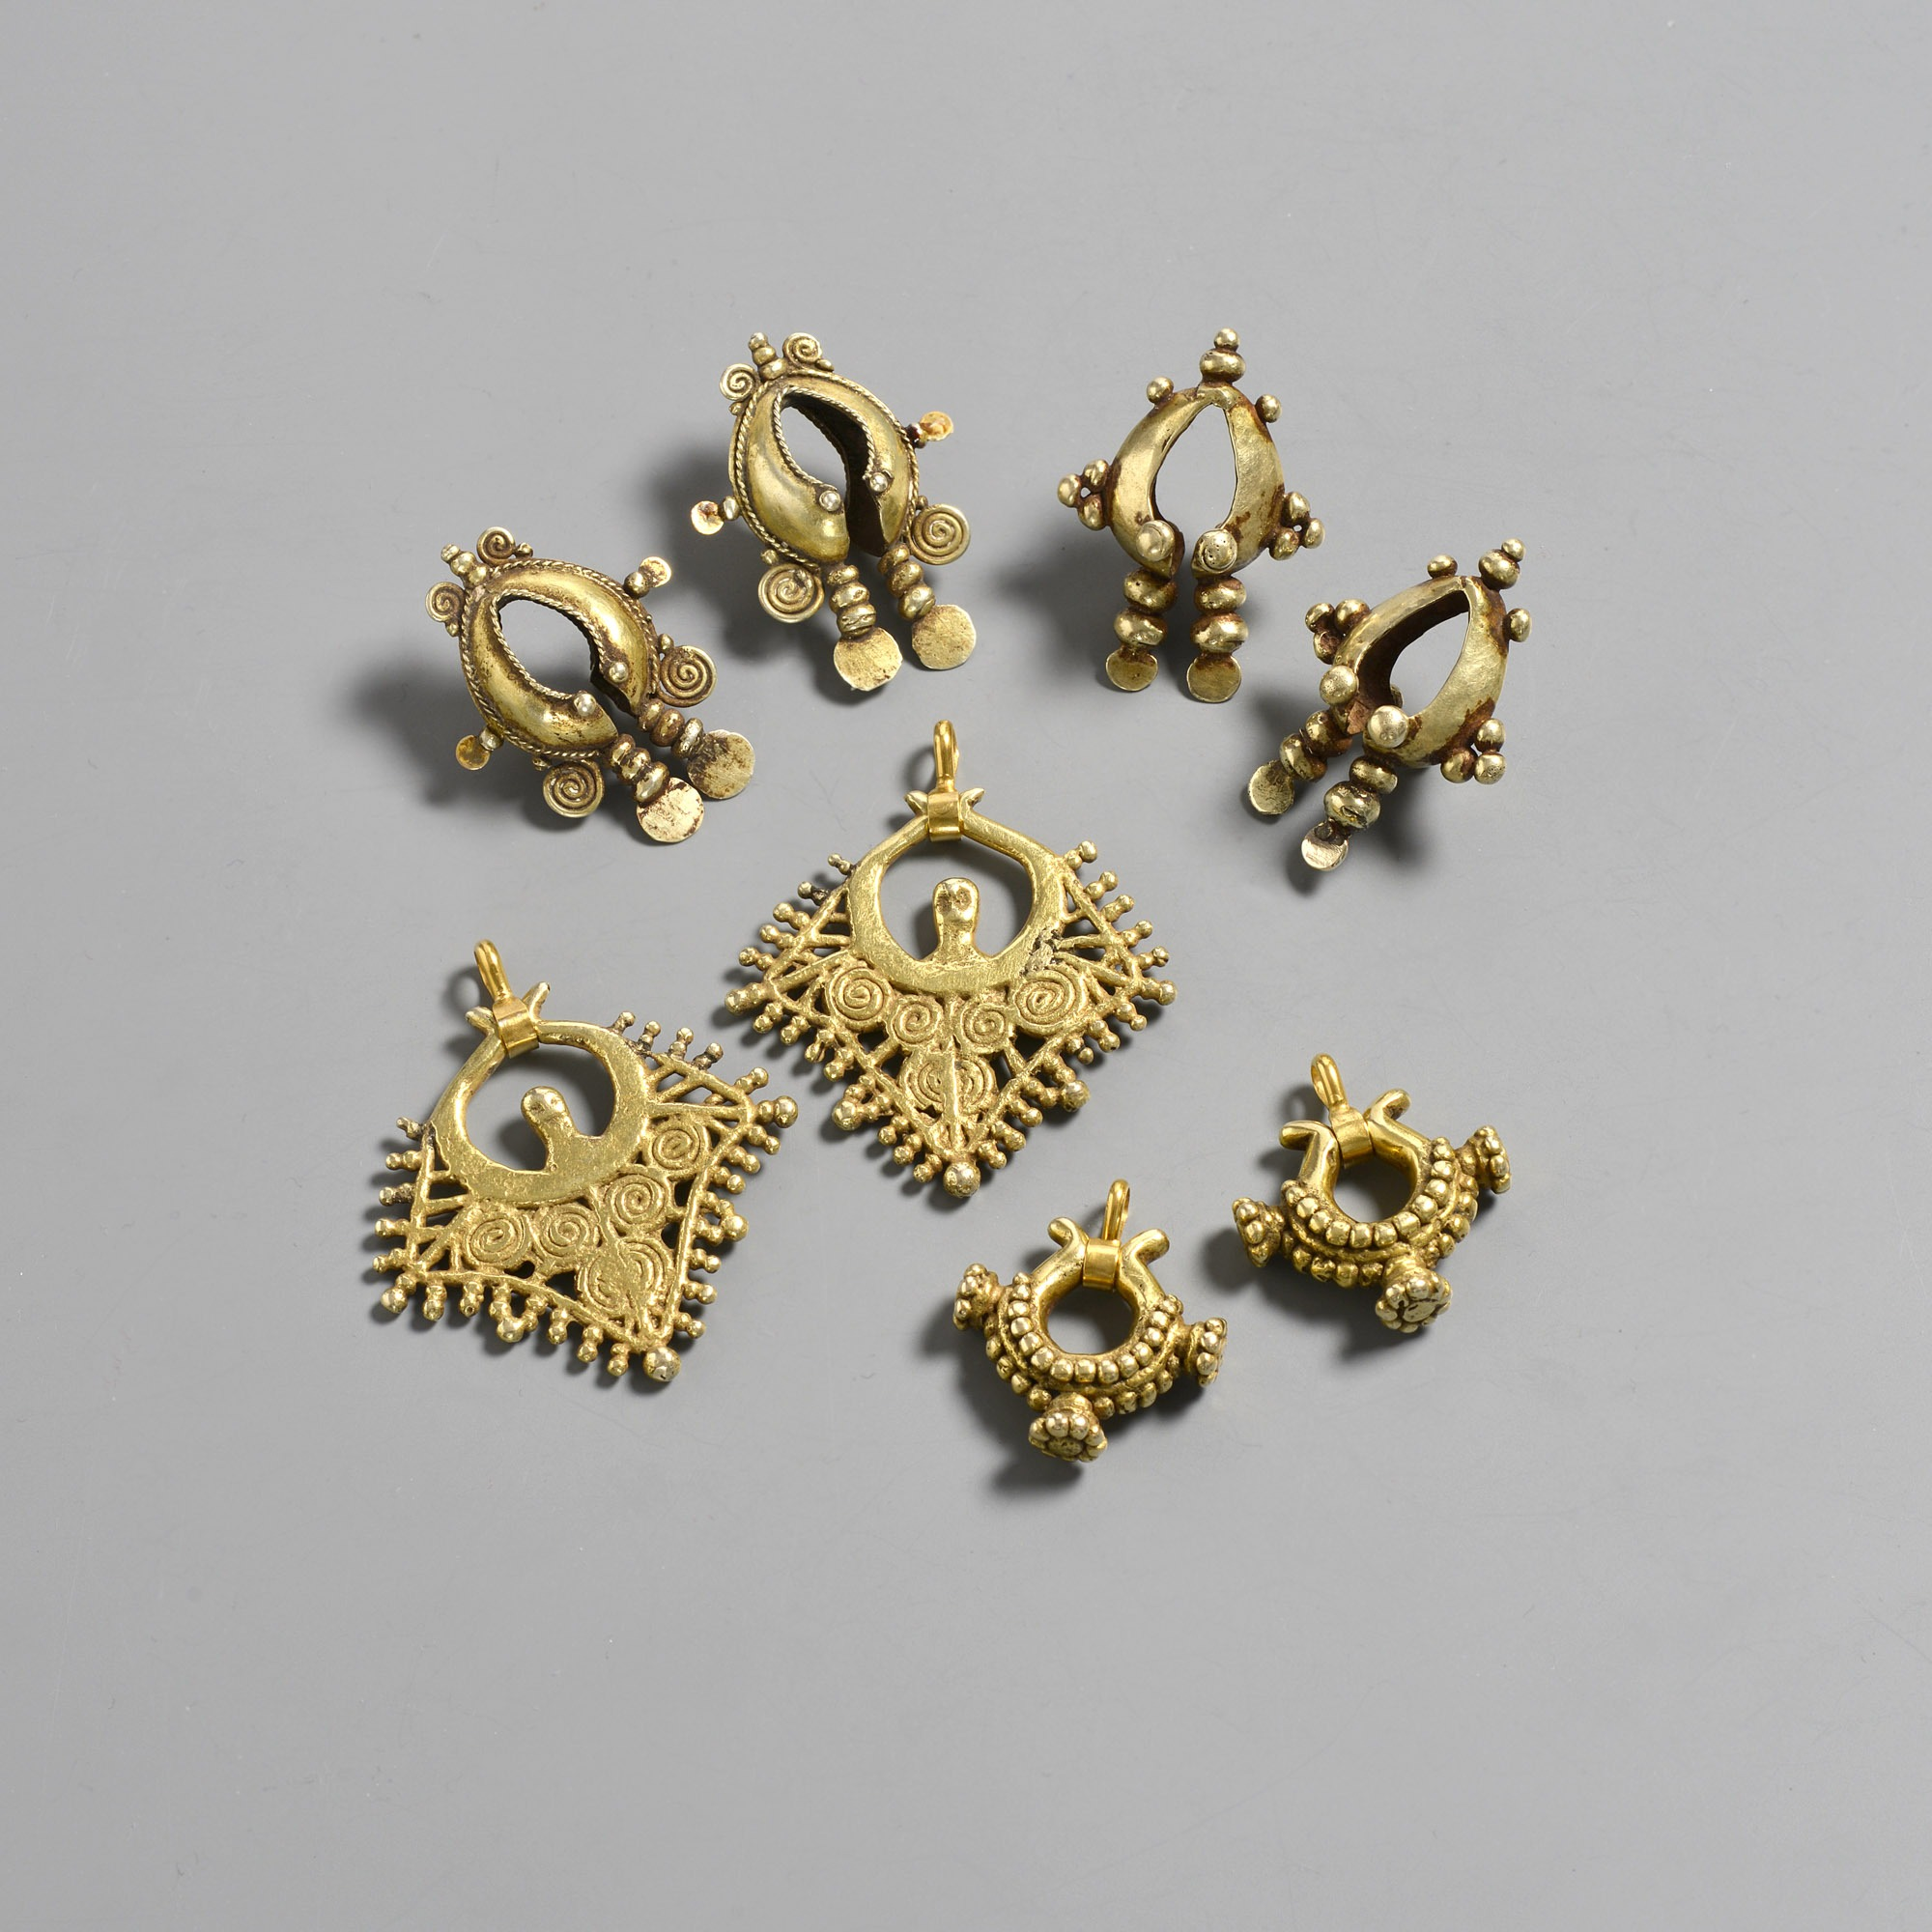 East Timor and Tanimbar Earrings.